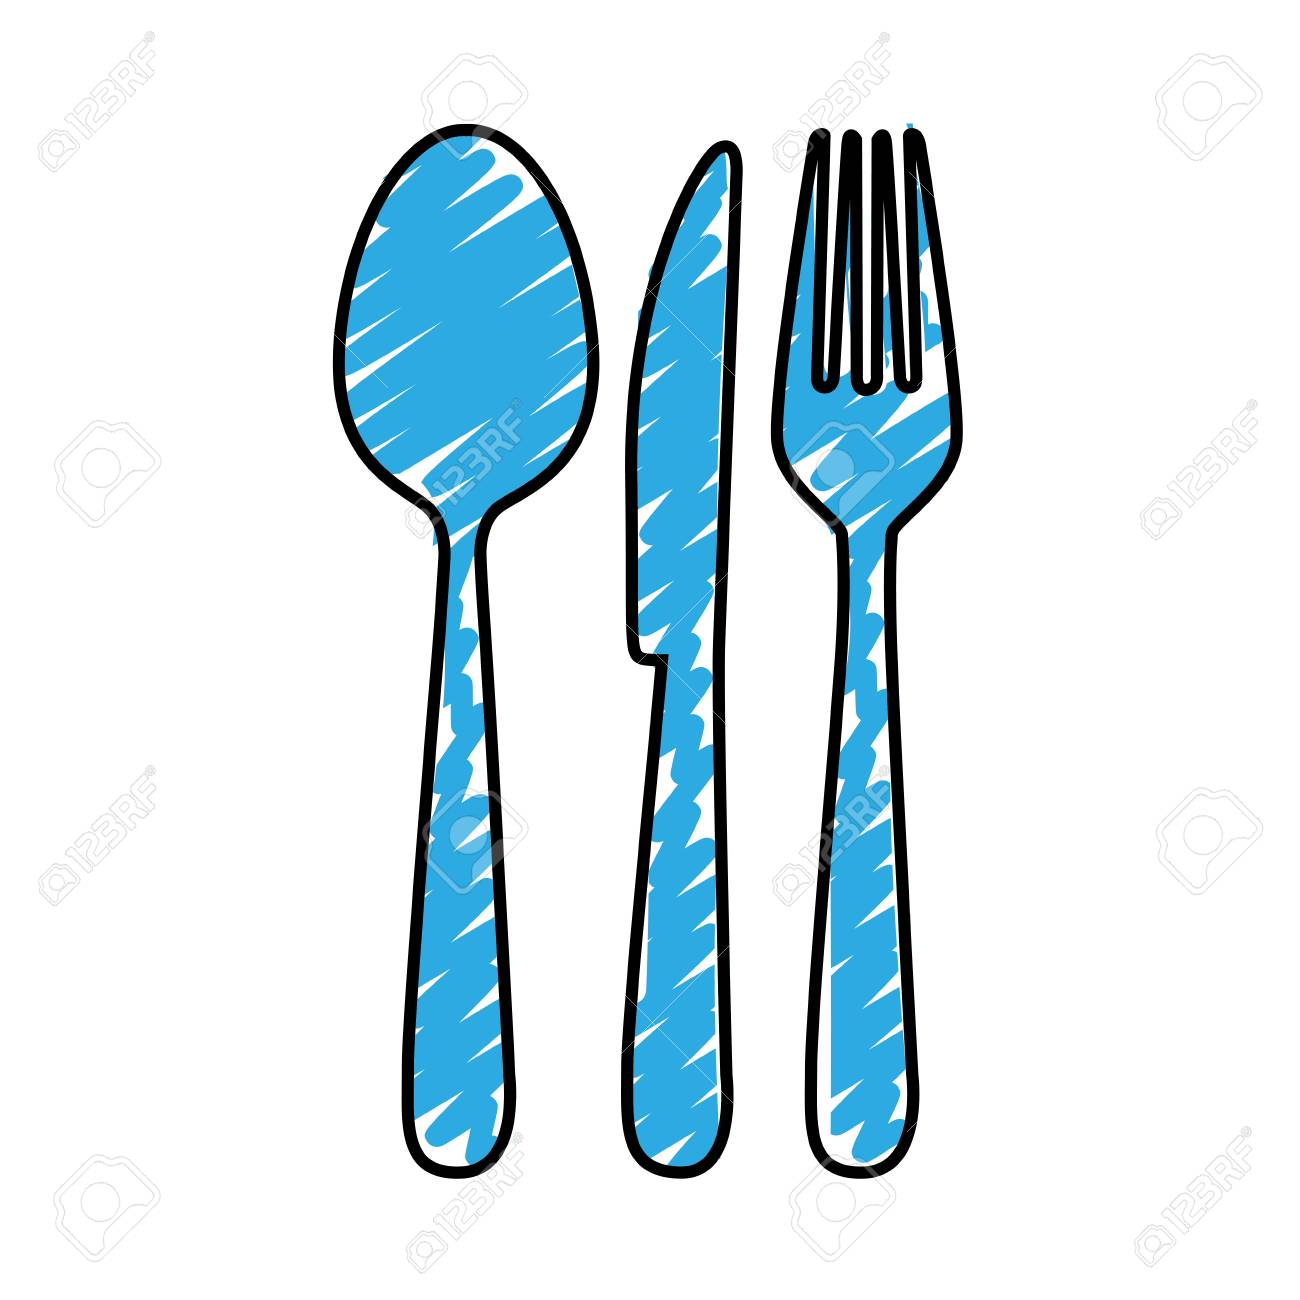 Cutlery Icon Image Simple Vector Illustration Design Royalty Free ...